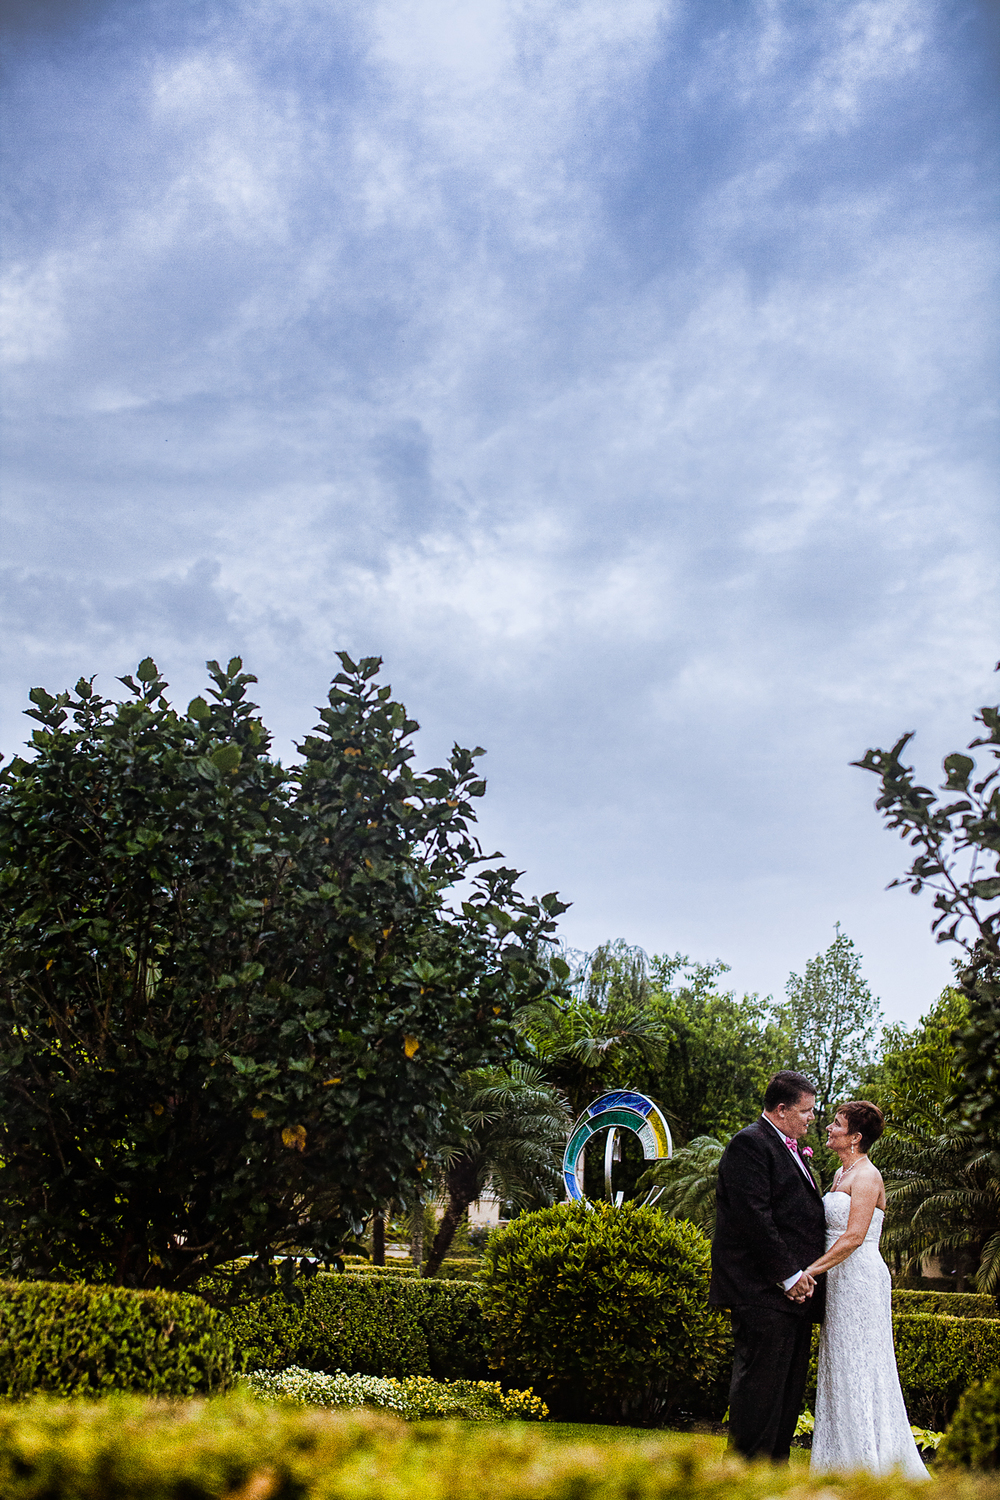 Creative Wedding photography by charlie brown photography